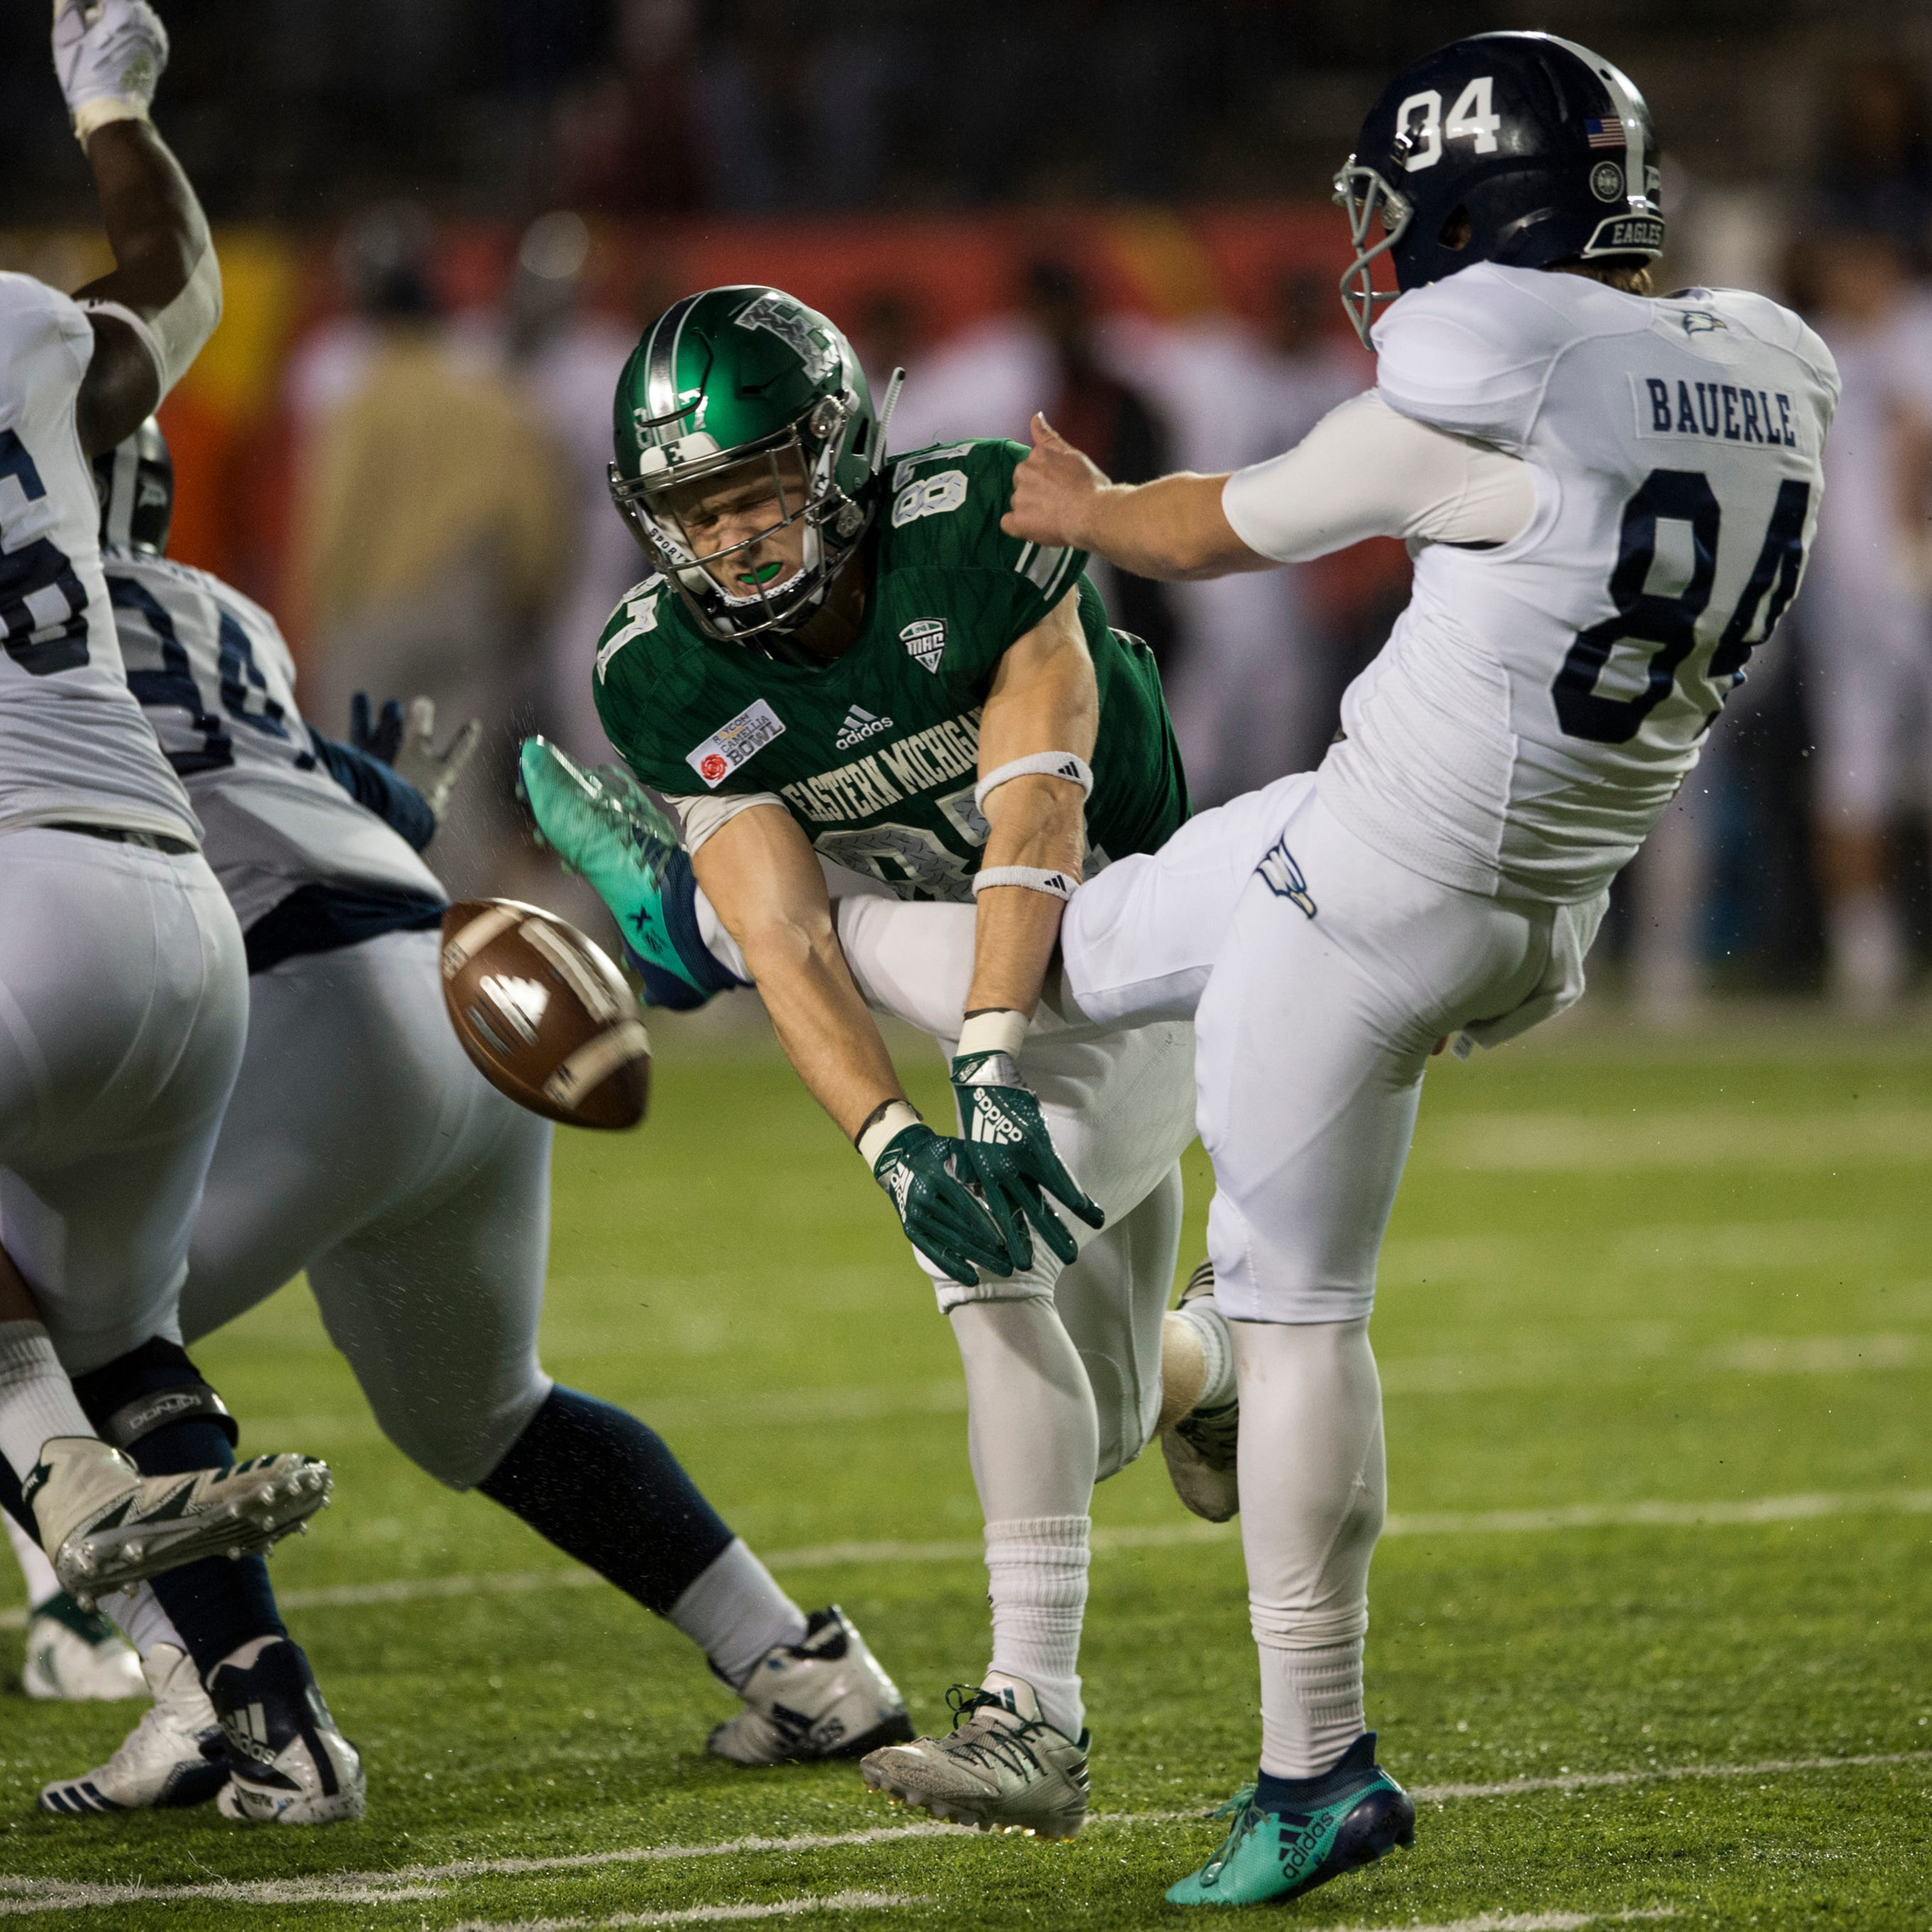 Last-second field goal trips up Eastern Michigan's bowl dreams